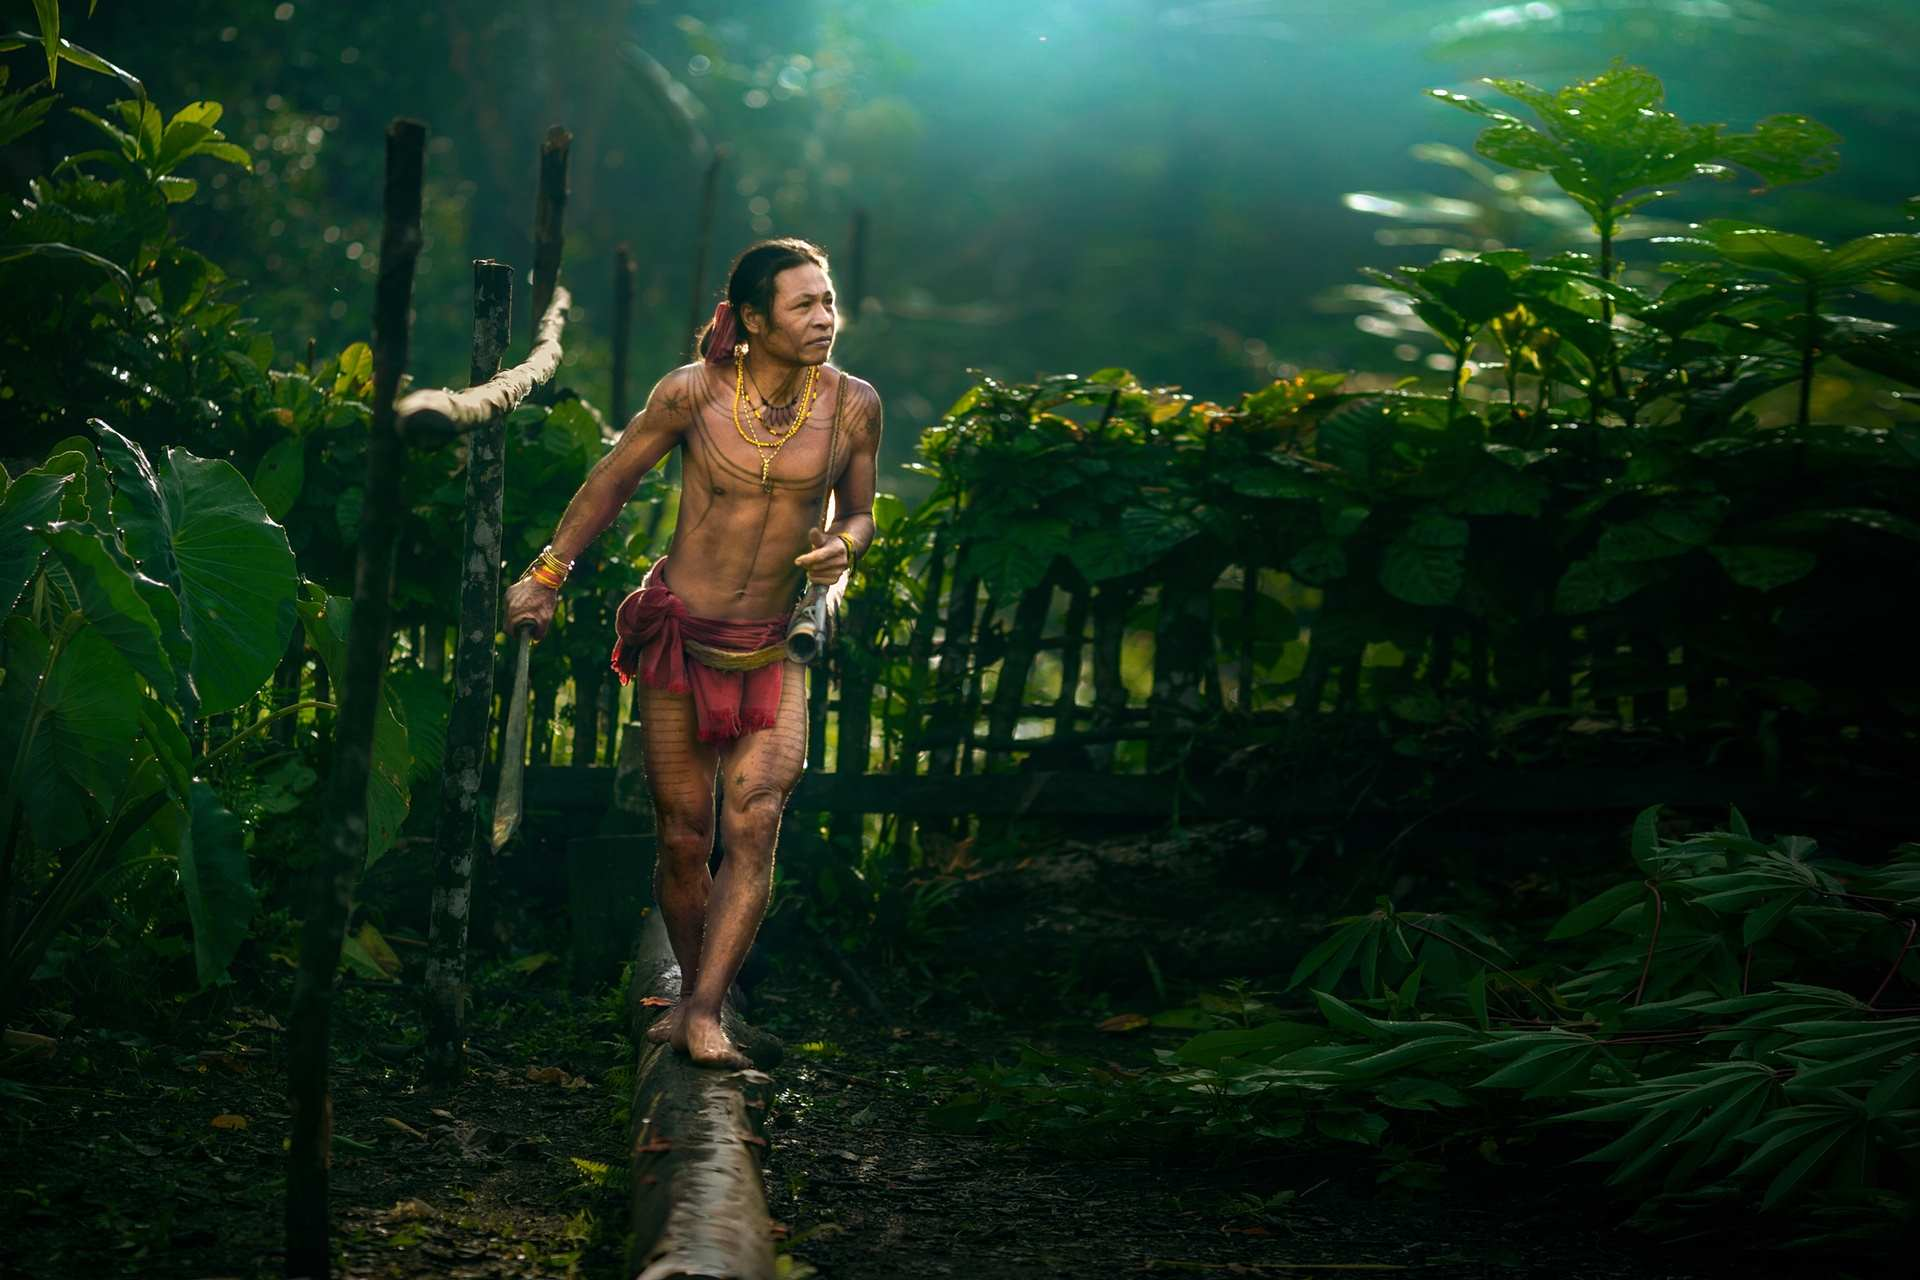 The Nomadic Life of The Mentawai Tattooed People